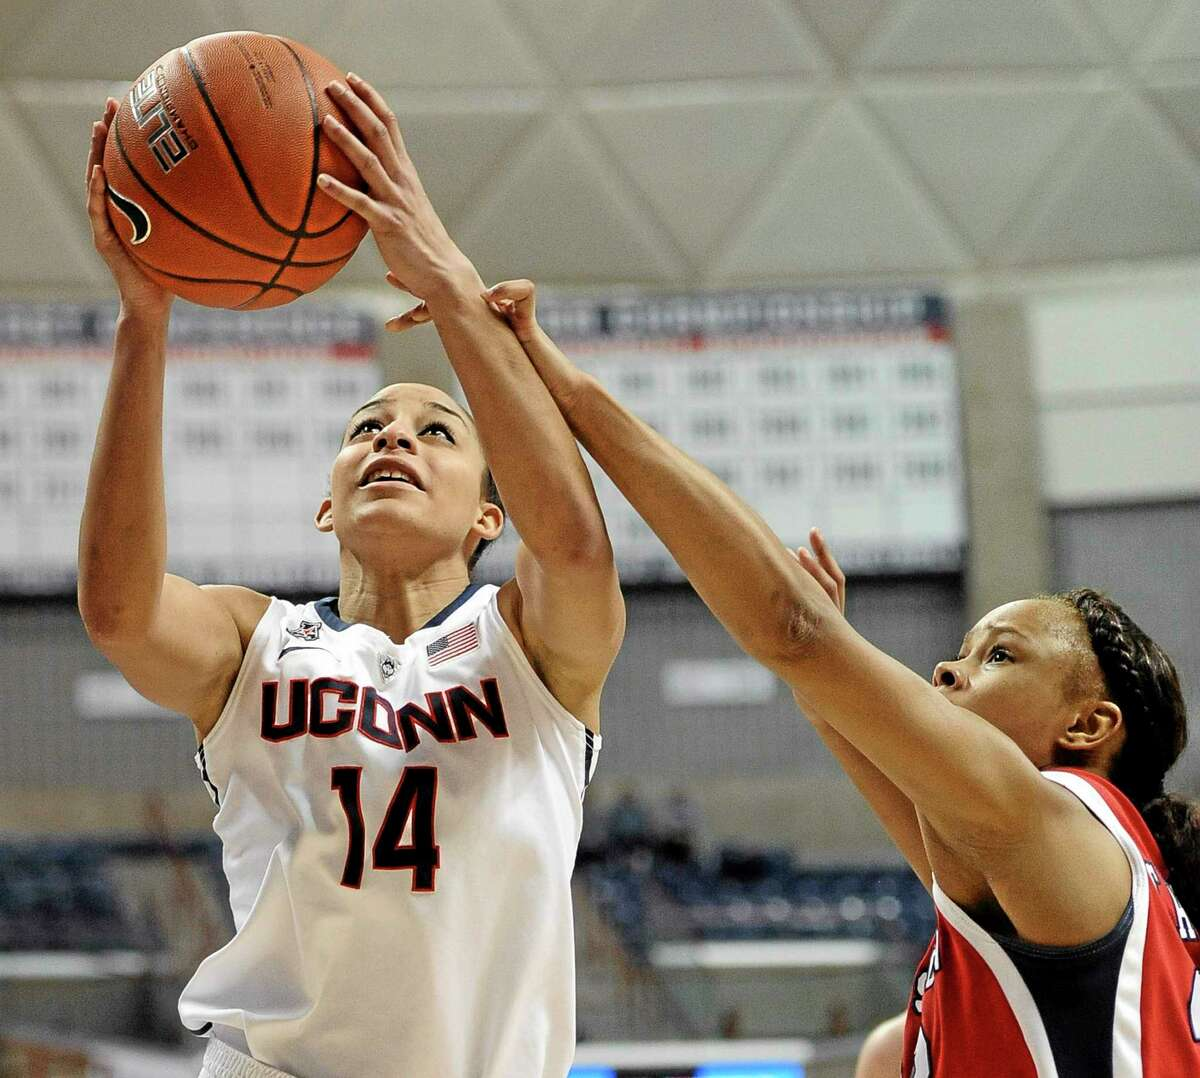 UConn's Bria Hartley will have a large contingent of fans make the ferry ride across Long Island Sound to see the Huskies play Temple Saturday at the Webster Bank Arena in Bridgeport.